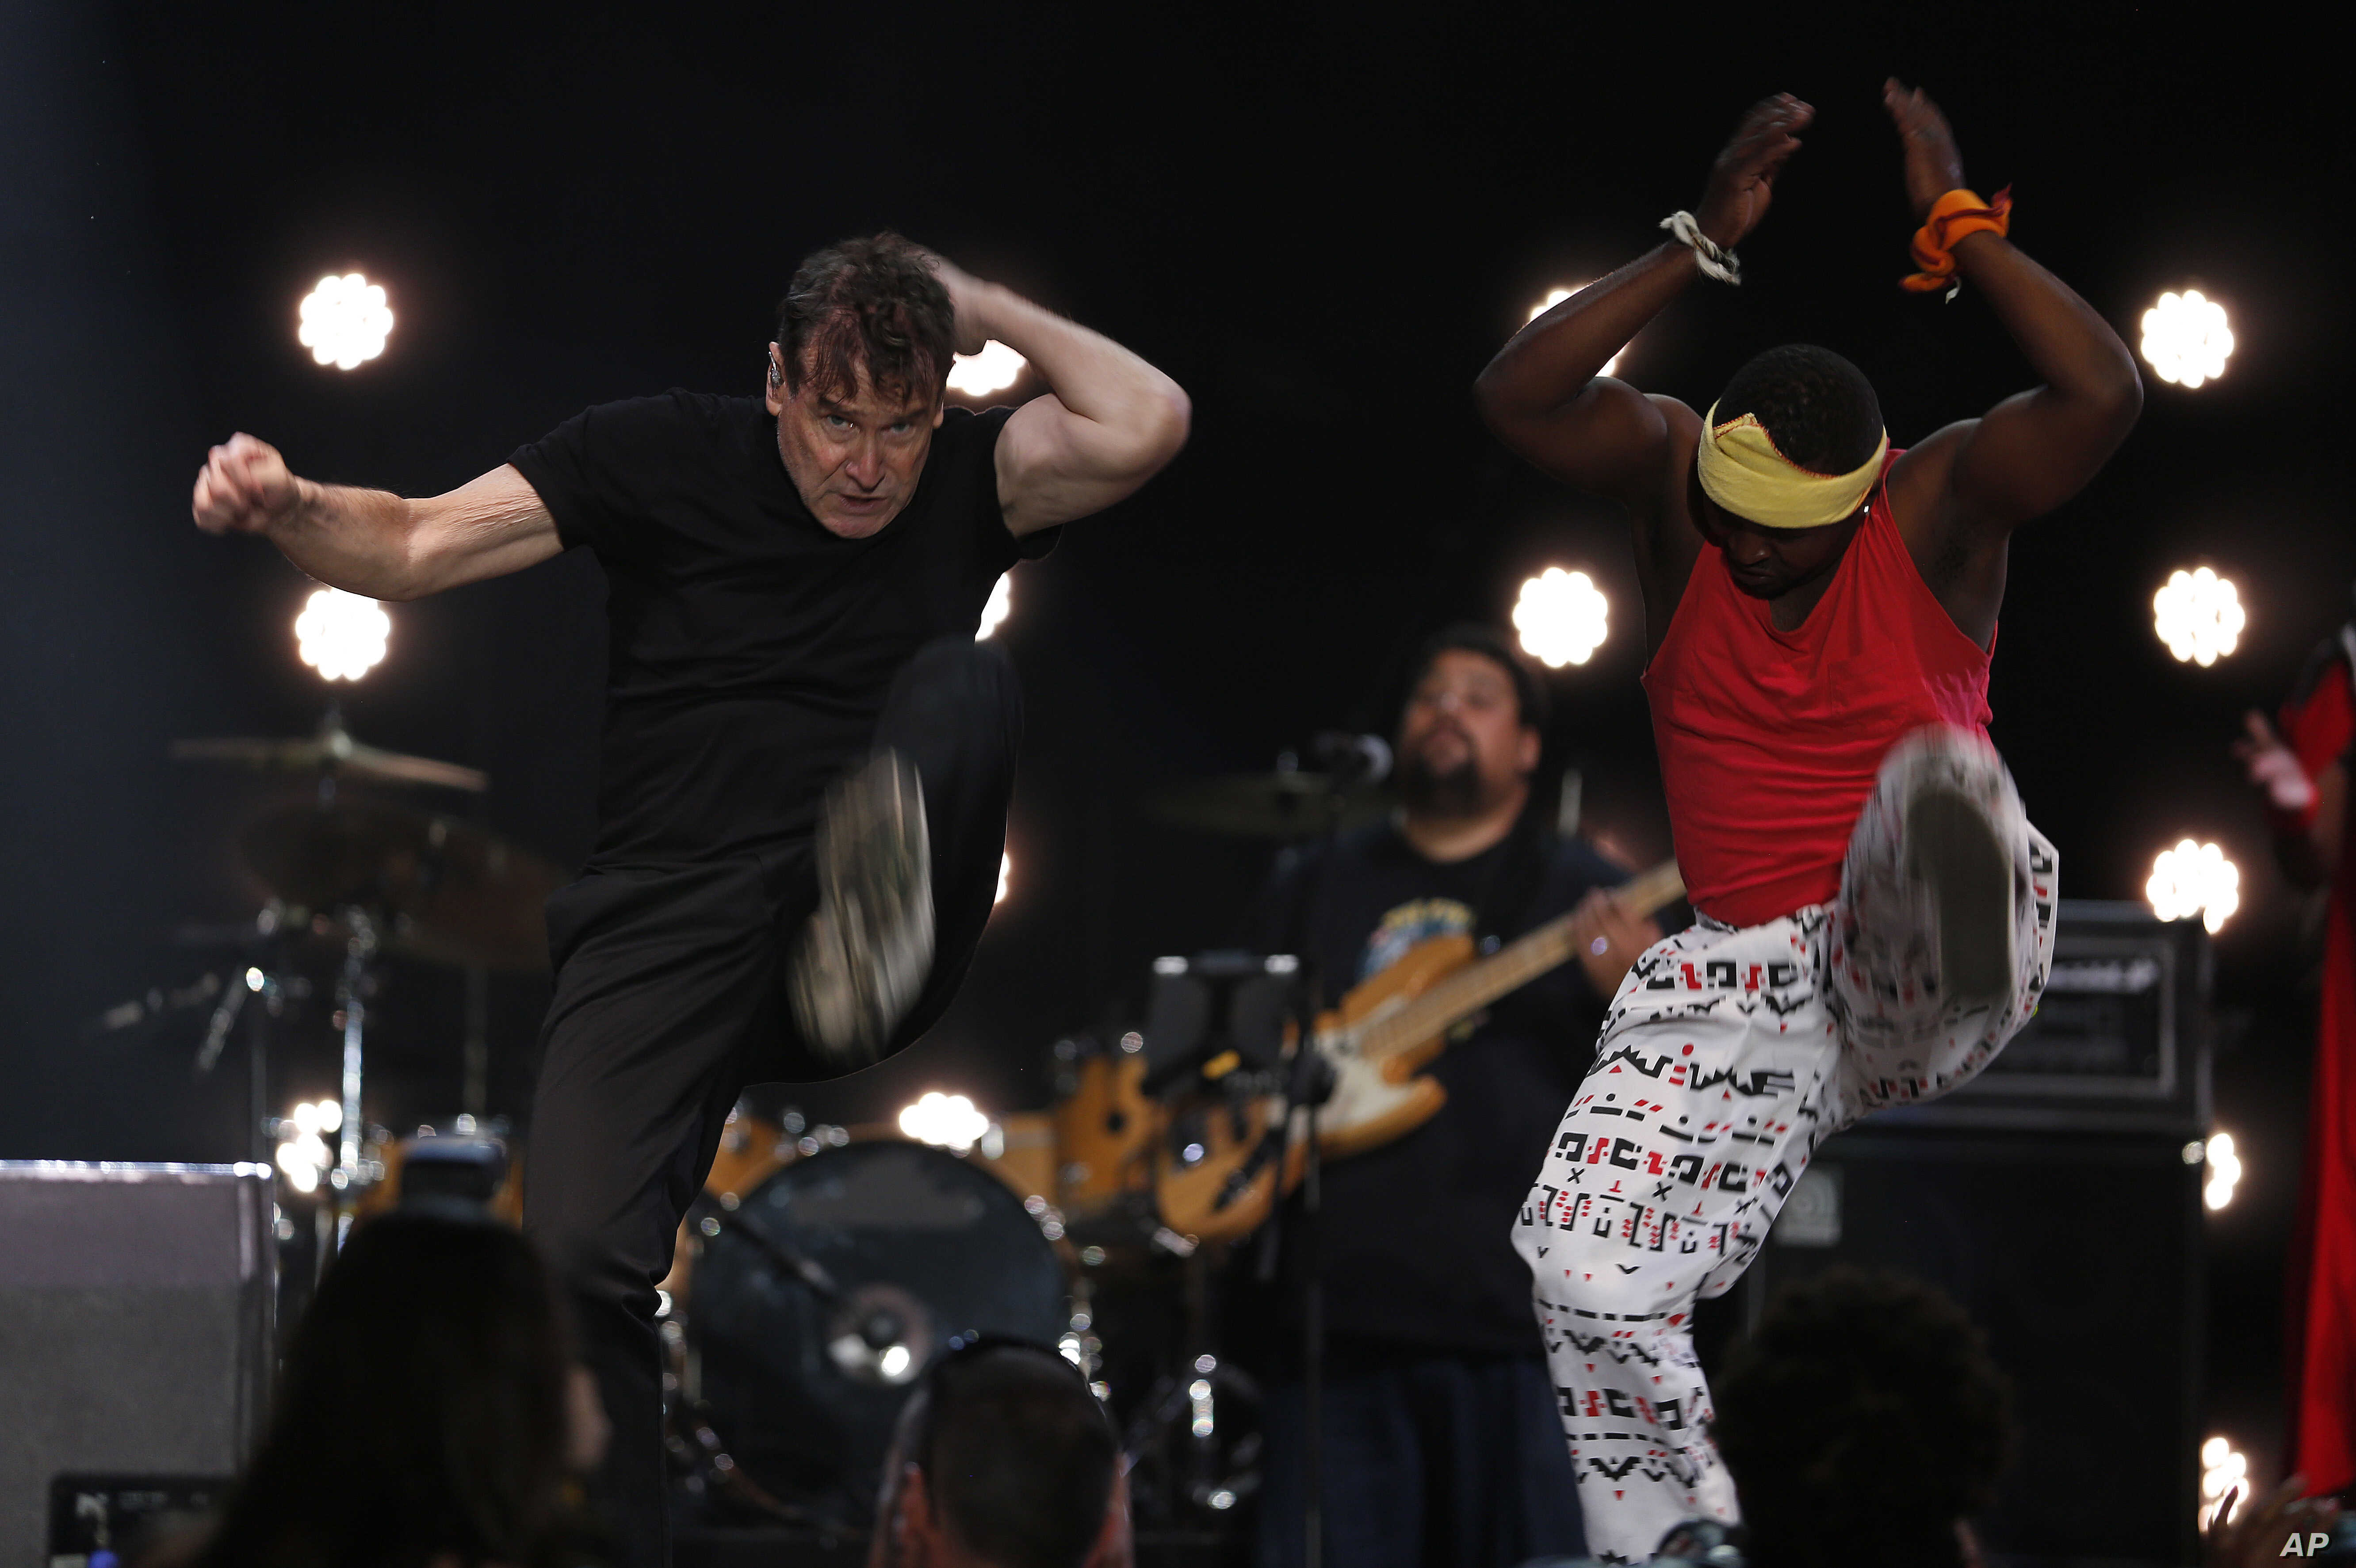 South Africa Mourns 'White Zulu' Johnny Clegg | Voice of